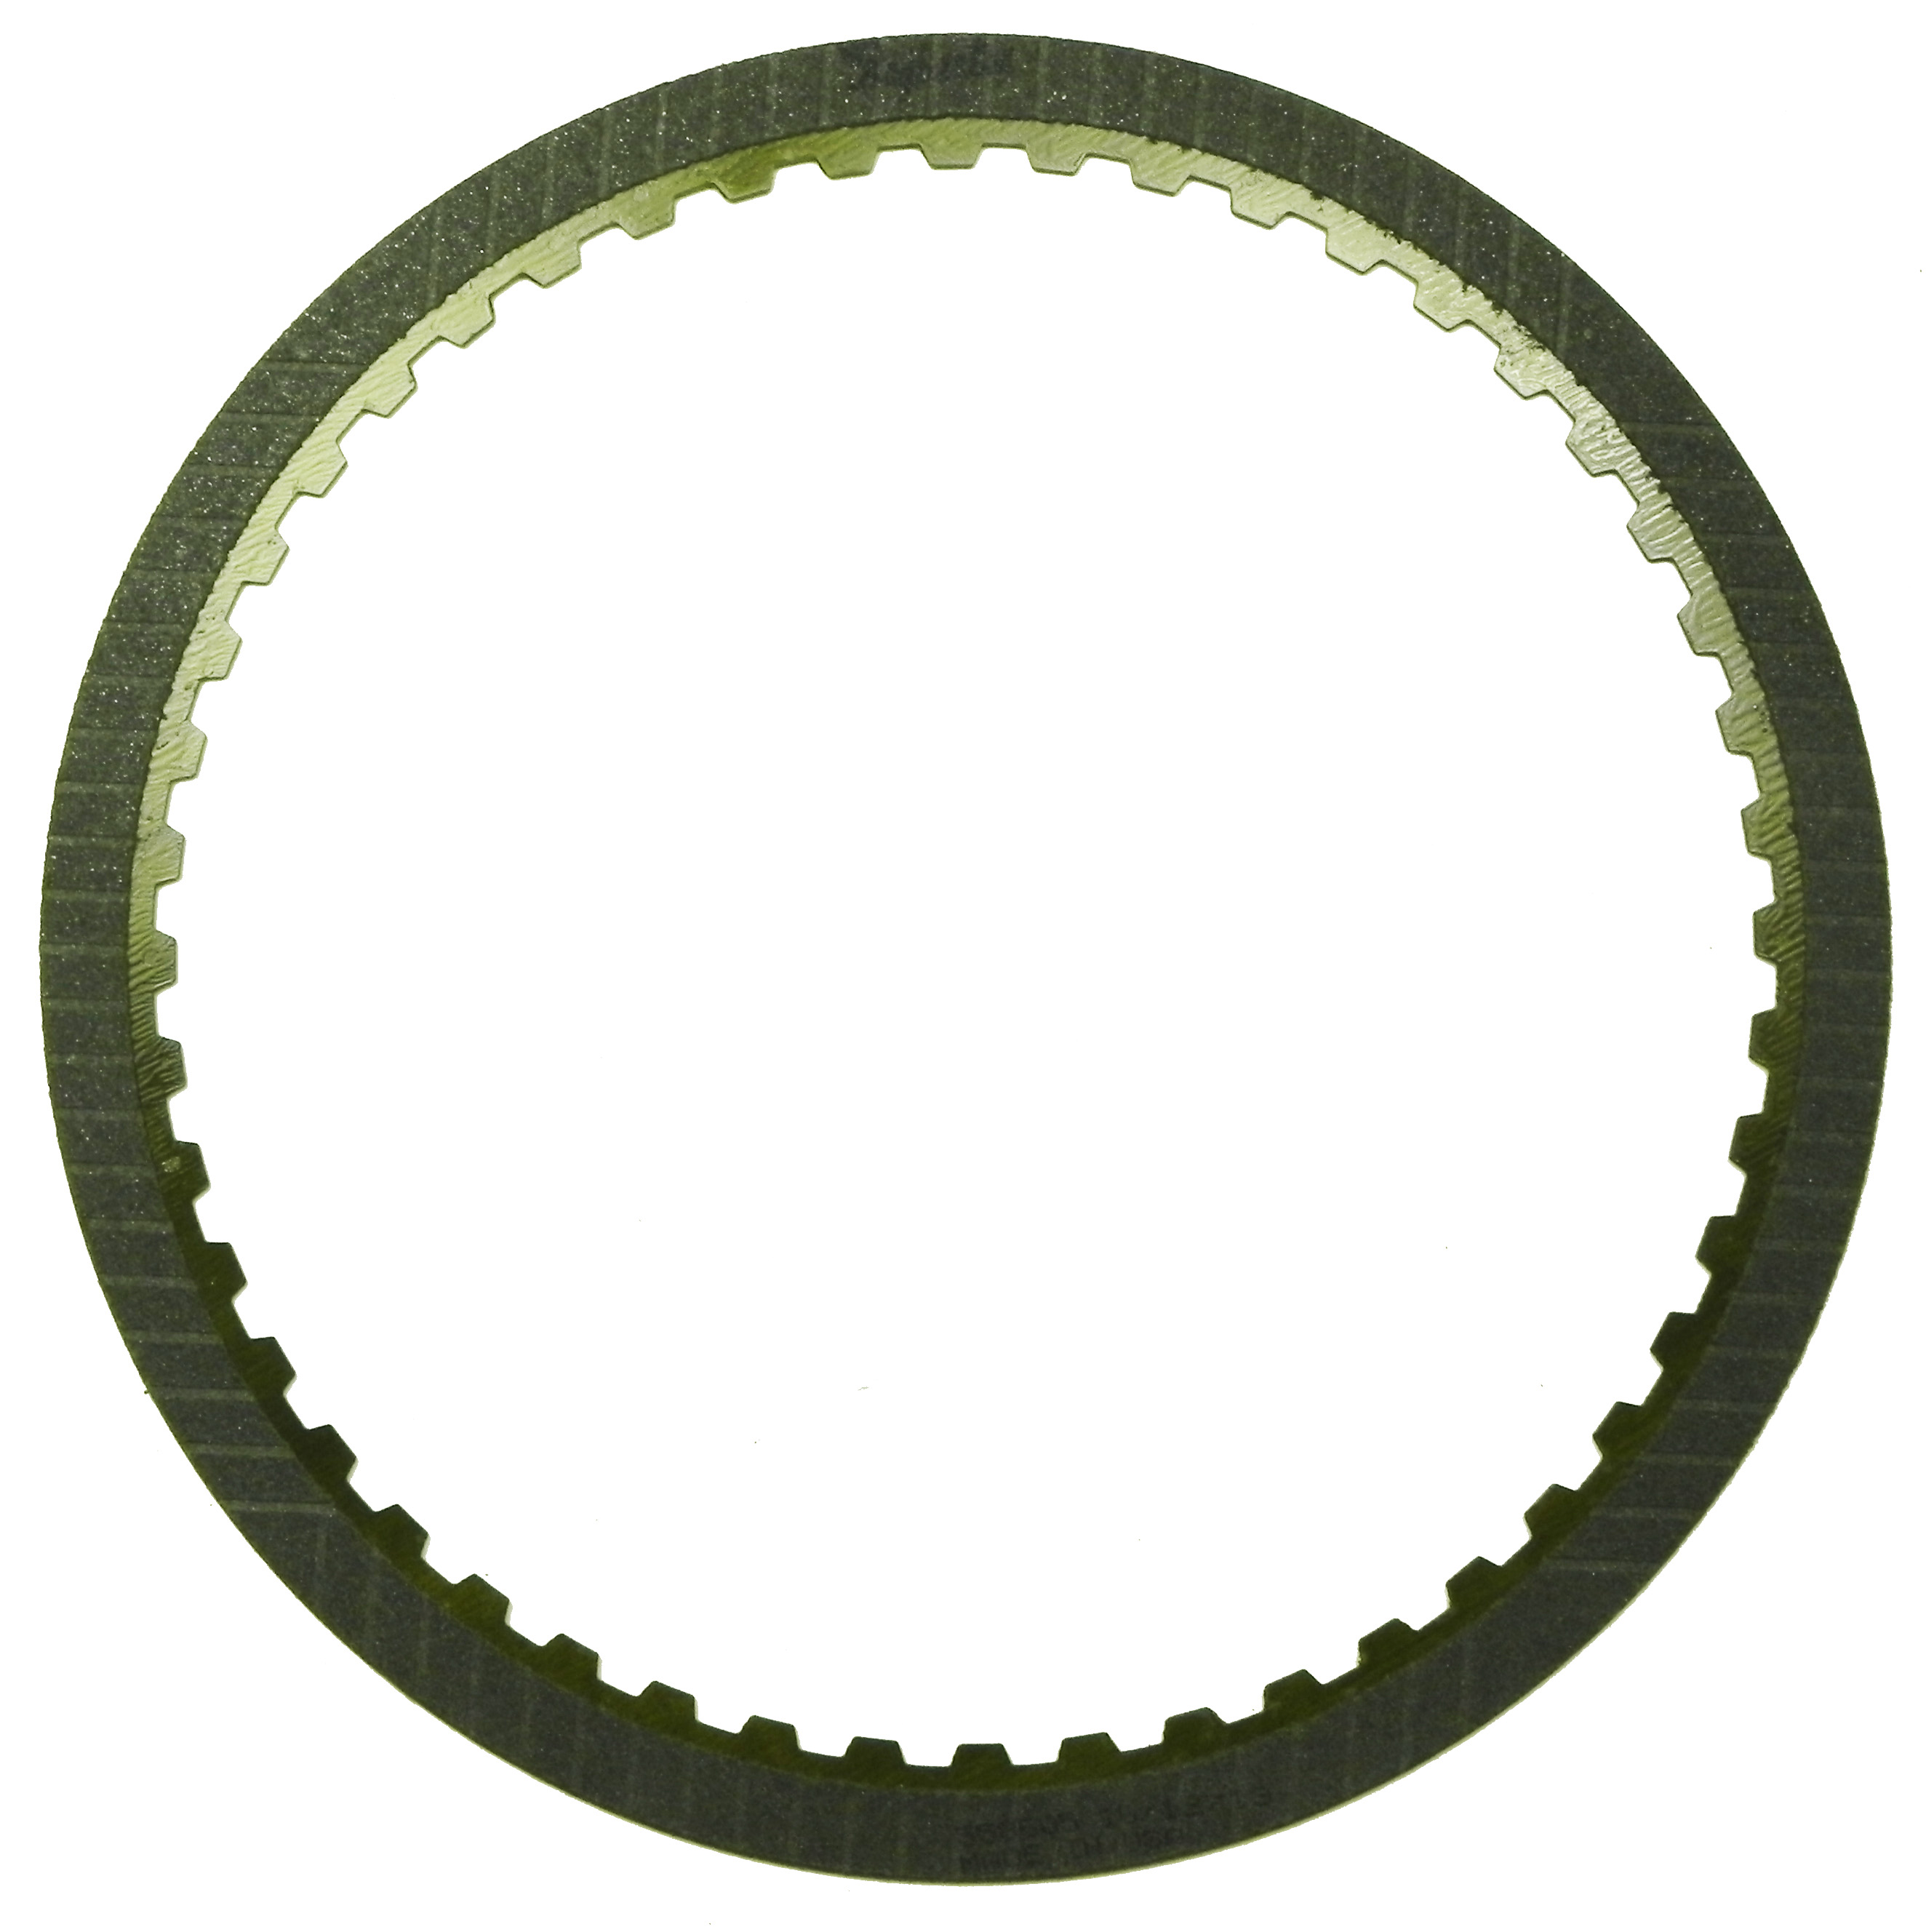 R558605 | 2012-ON Friction Clutch Plate High Energy Low, Reverse (Waved) High Energy